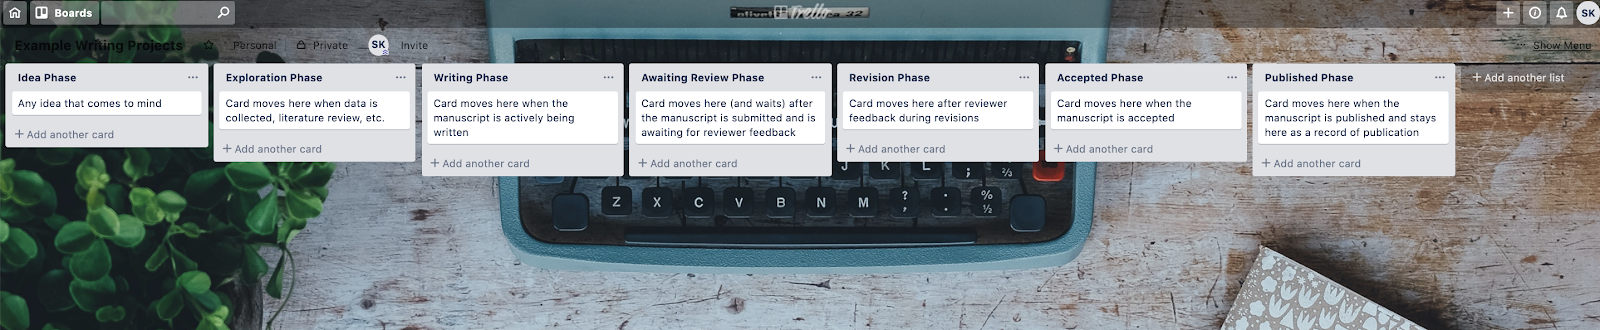 A screenshot of a Trello board for research projects.